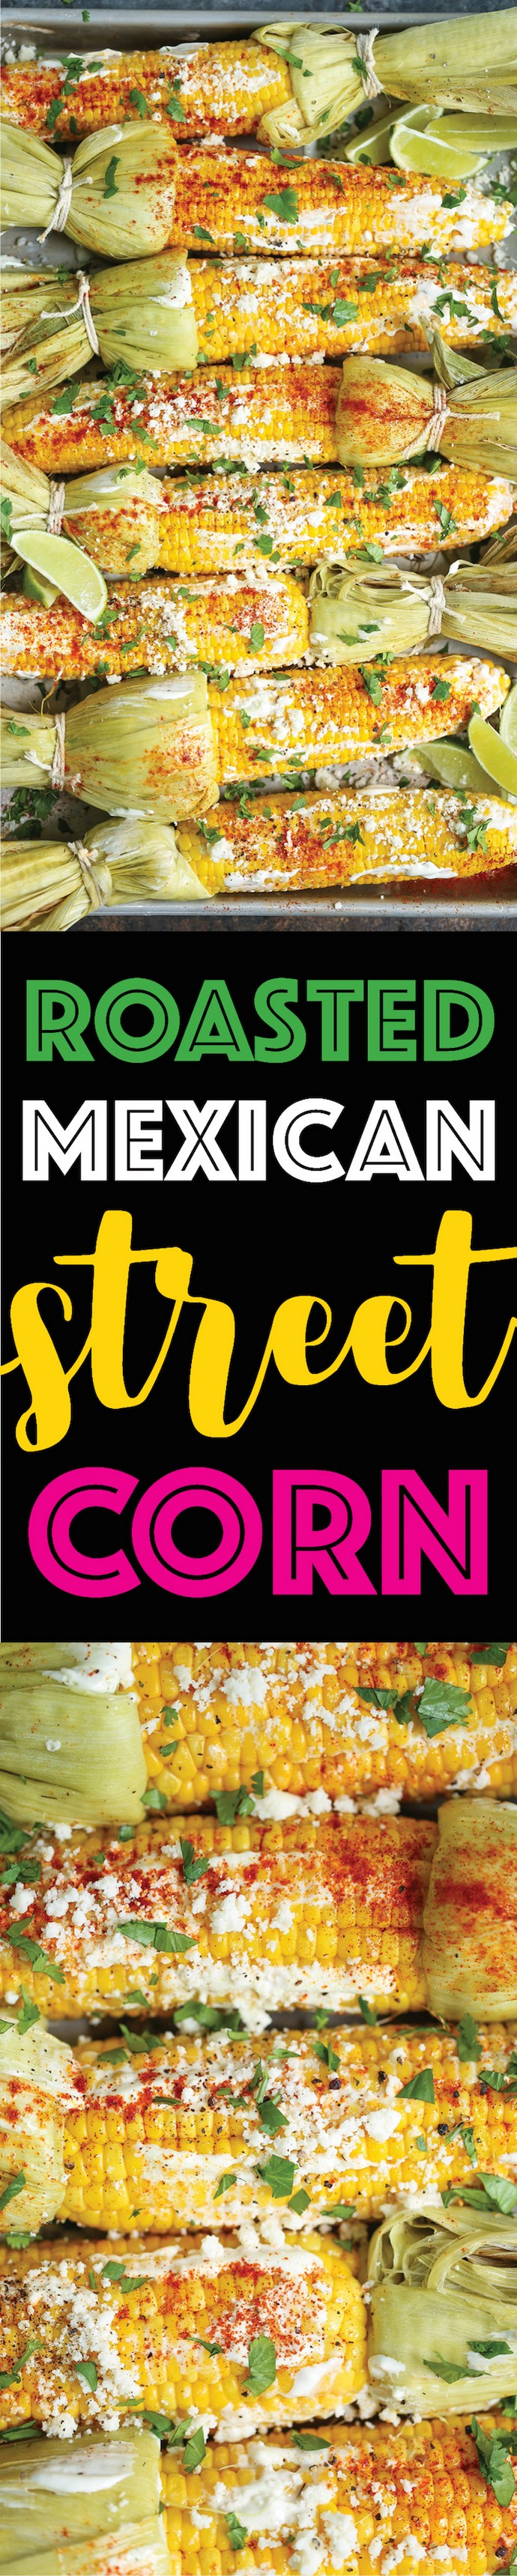 Roasted Mexican Street Corn